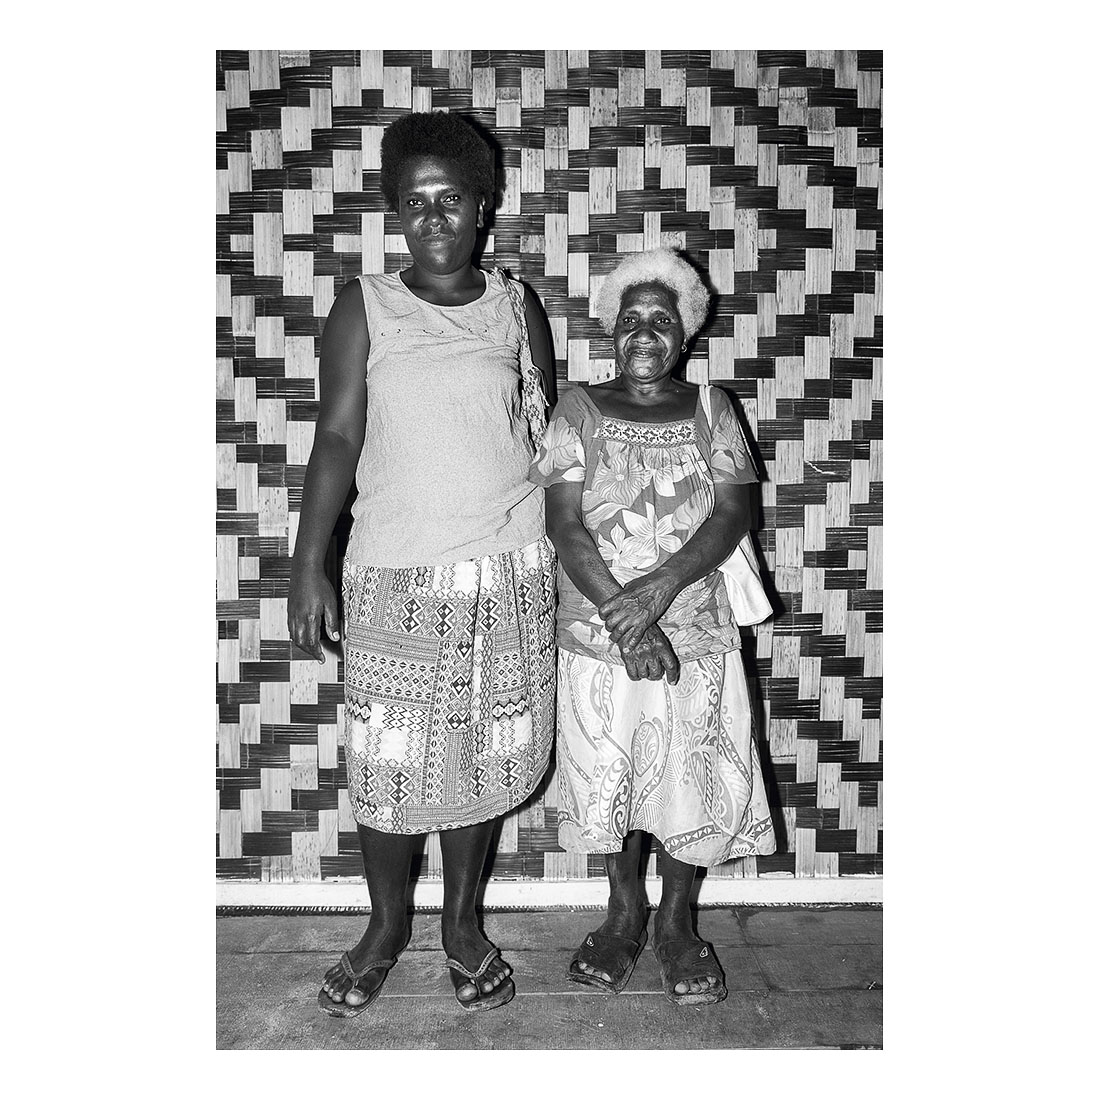 #4 Verahue, Guadalcanal, Solomon Islands  (2016).  Archival pigment print on Ilford paper. Exhibition print 36cm x 24cm. Different sizes available.